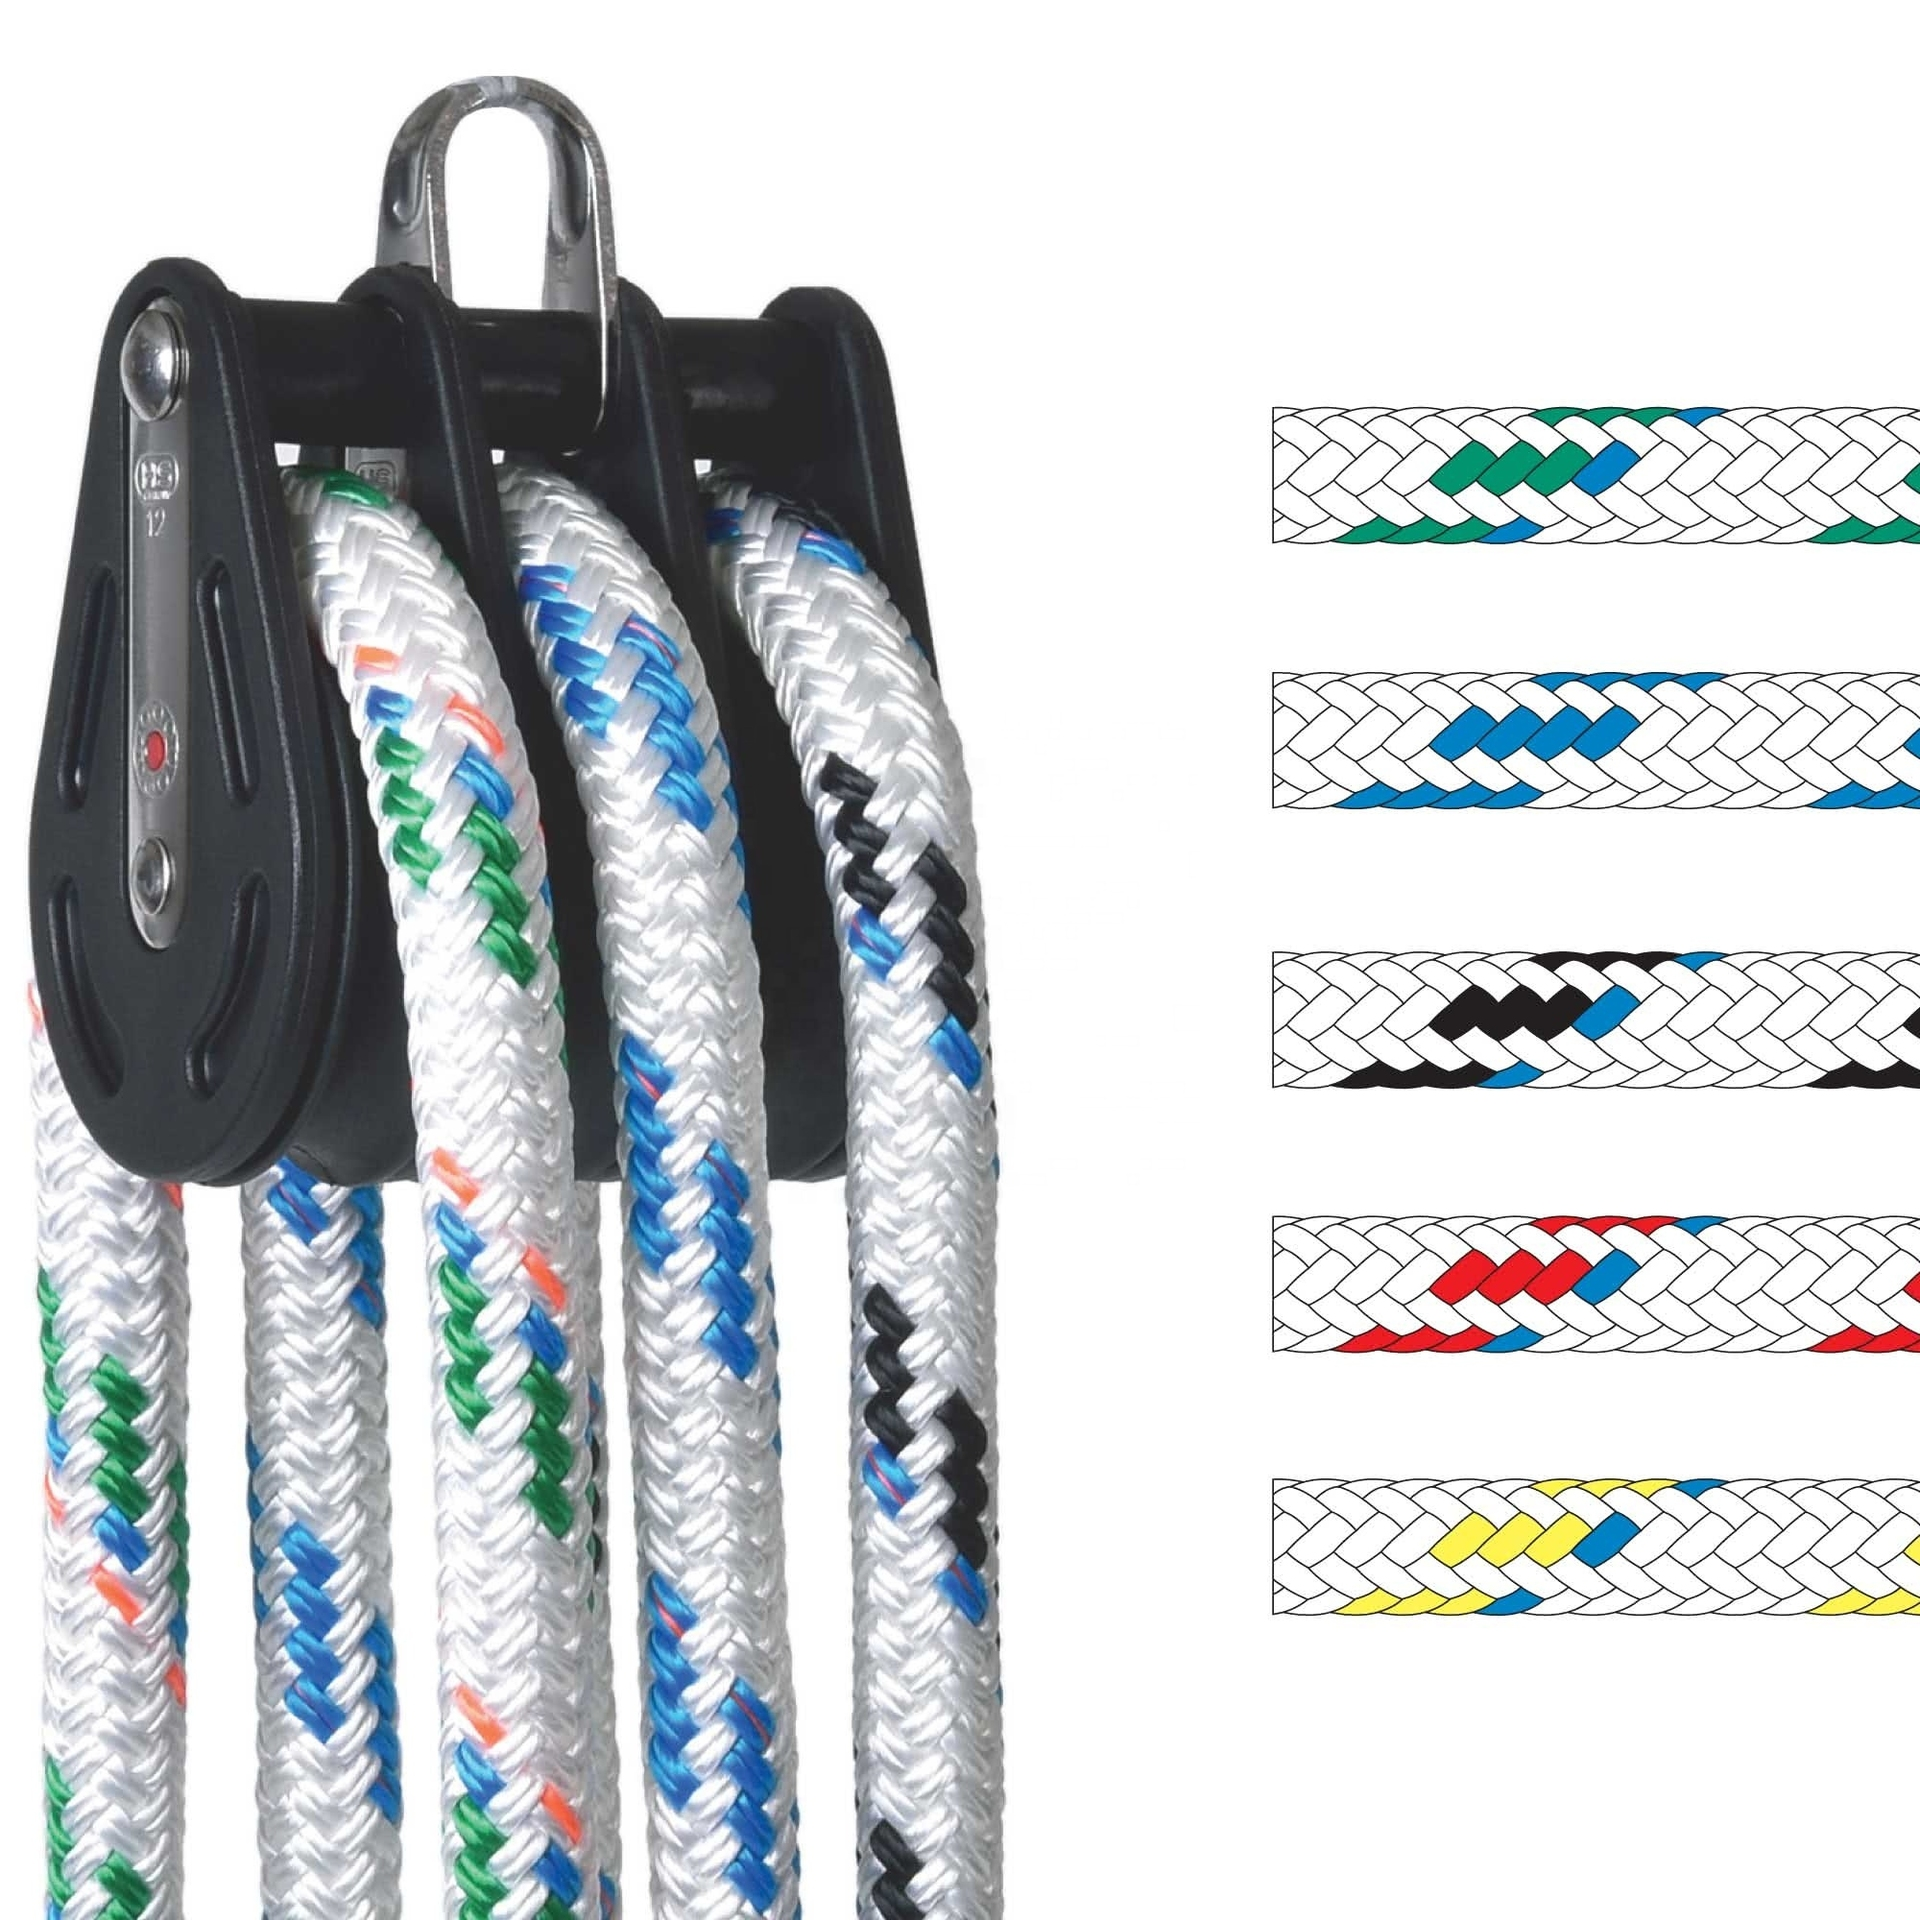 High performance customized package and sizesailing rope for sailboat, halyard, jib sheet, etc